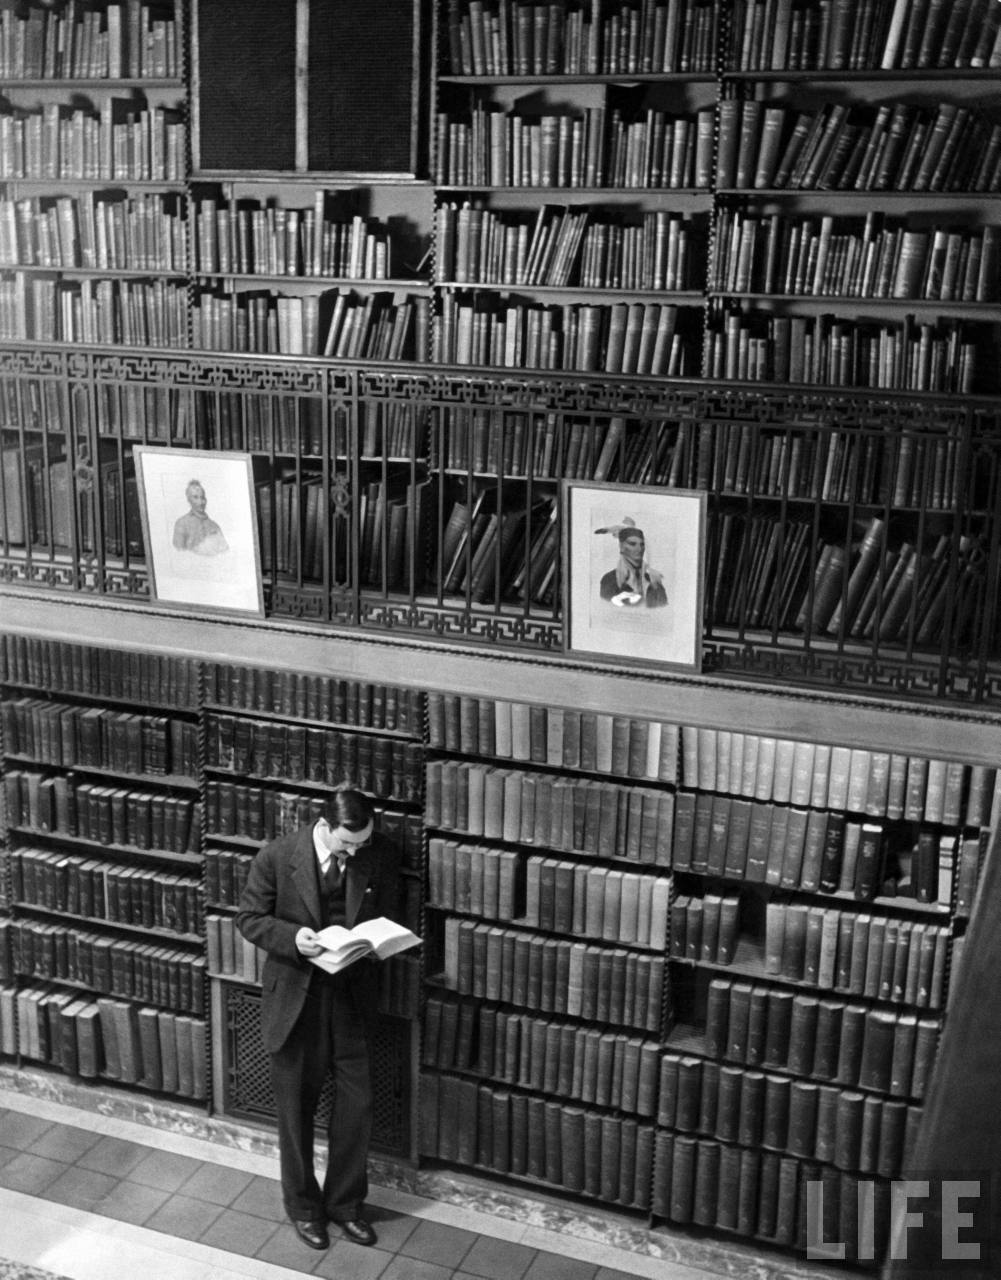 bookmania:  Author, Hoffman Reynolds Hays, reading book among shelves in American History Room in New York Public Library (1944) (via tatteredcover, bibliofila)